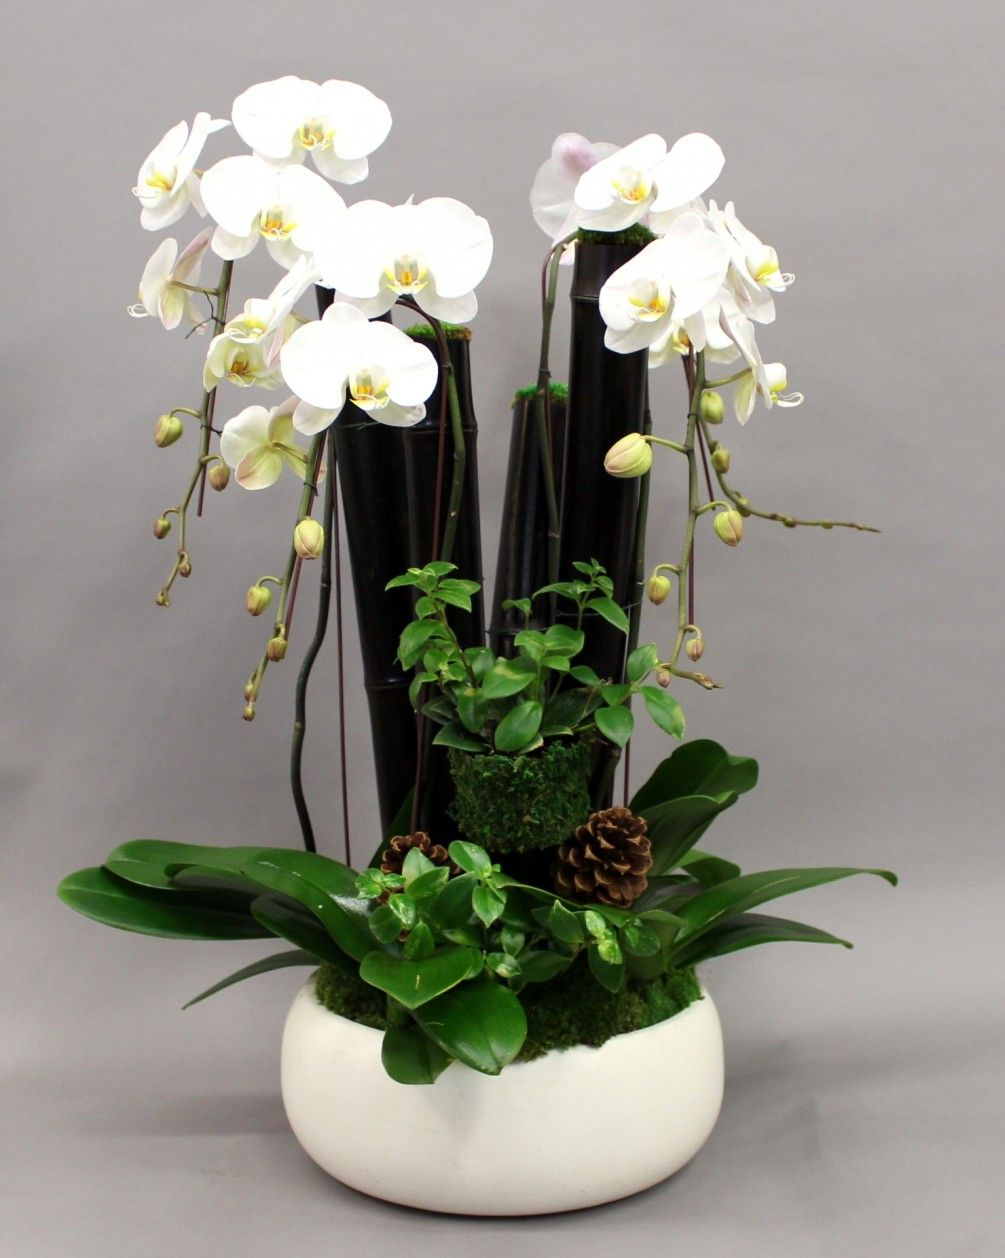 Decadent Orchid Planting By Anthony S Flowers In Brentwood Orchids Orchid Plants Plants